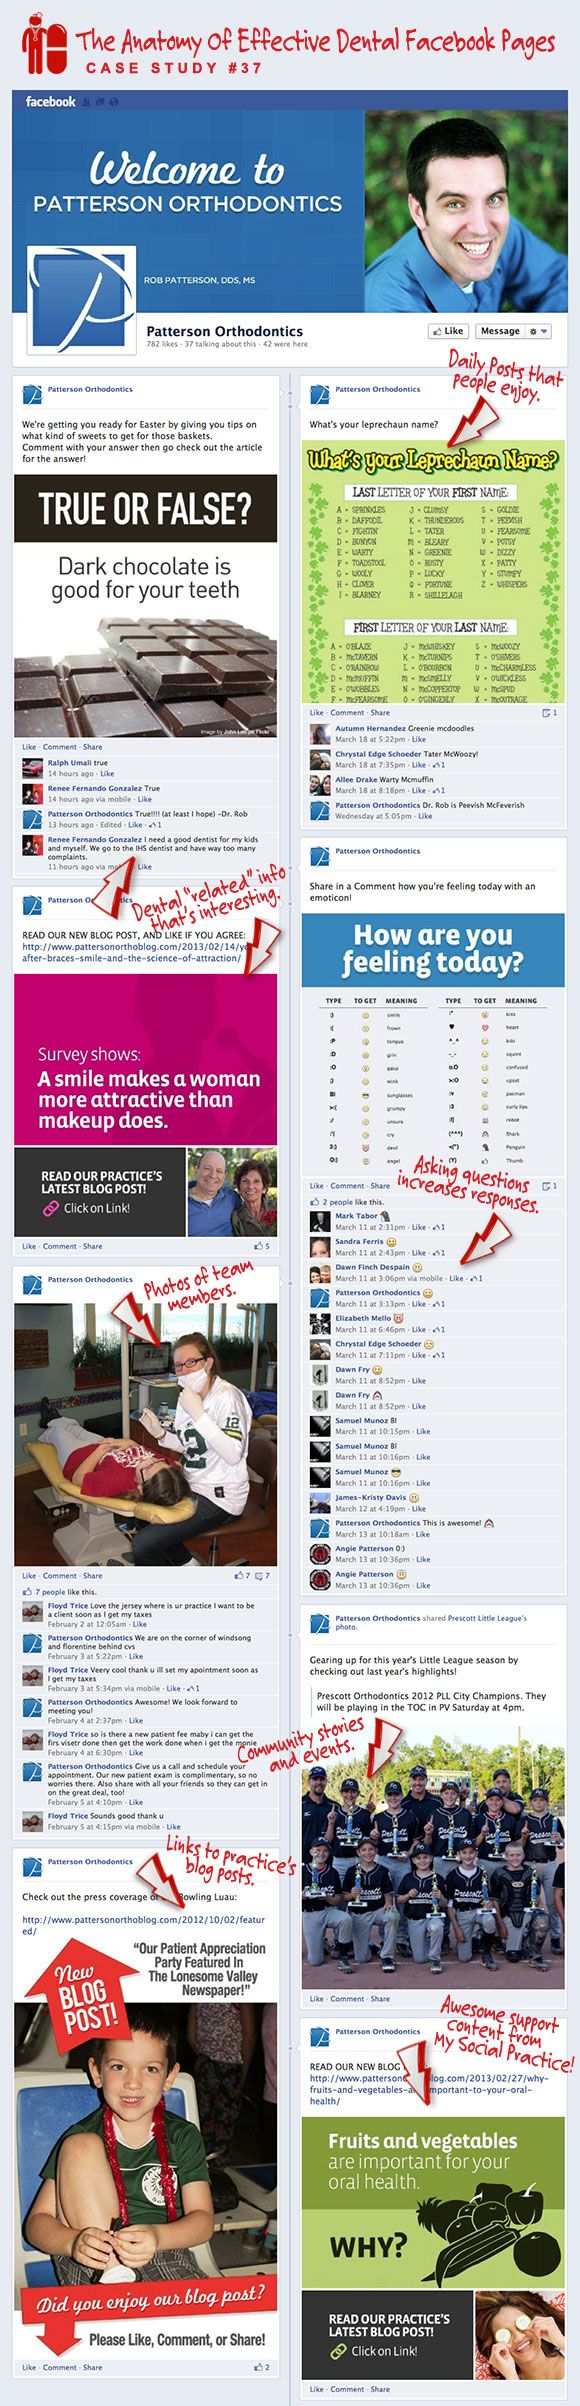 Facebook For Dentists - Case Study #37 — My Social Practice - Social Media For Dentists